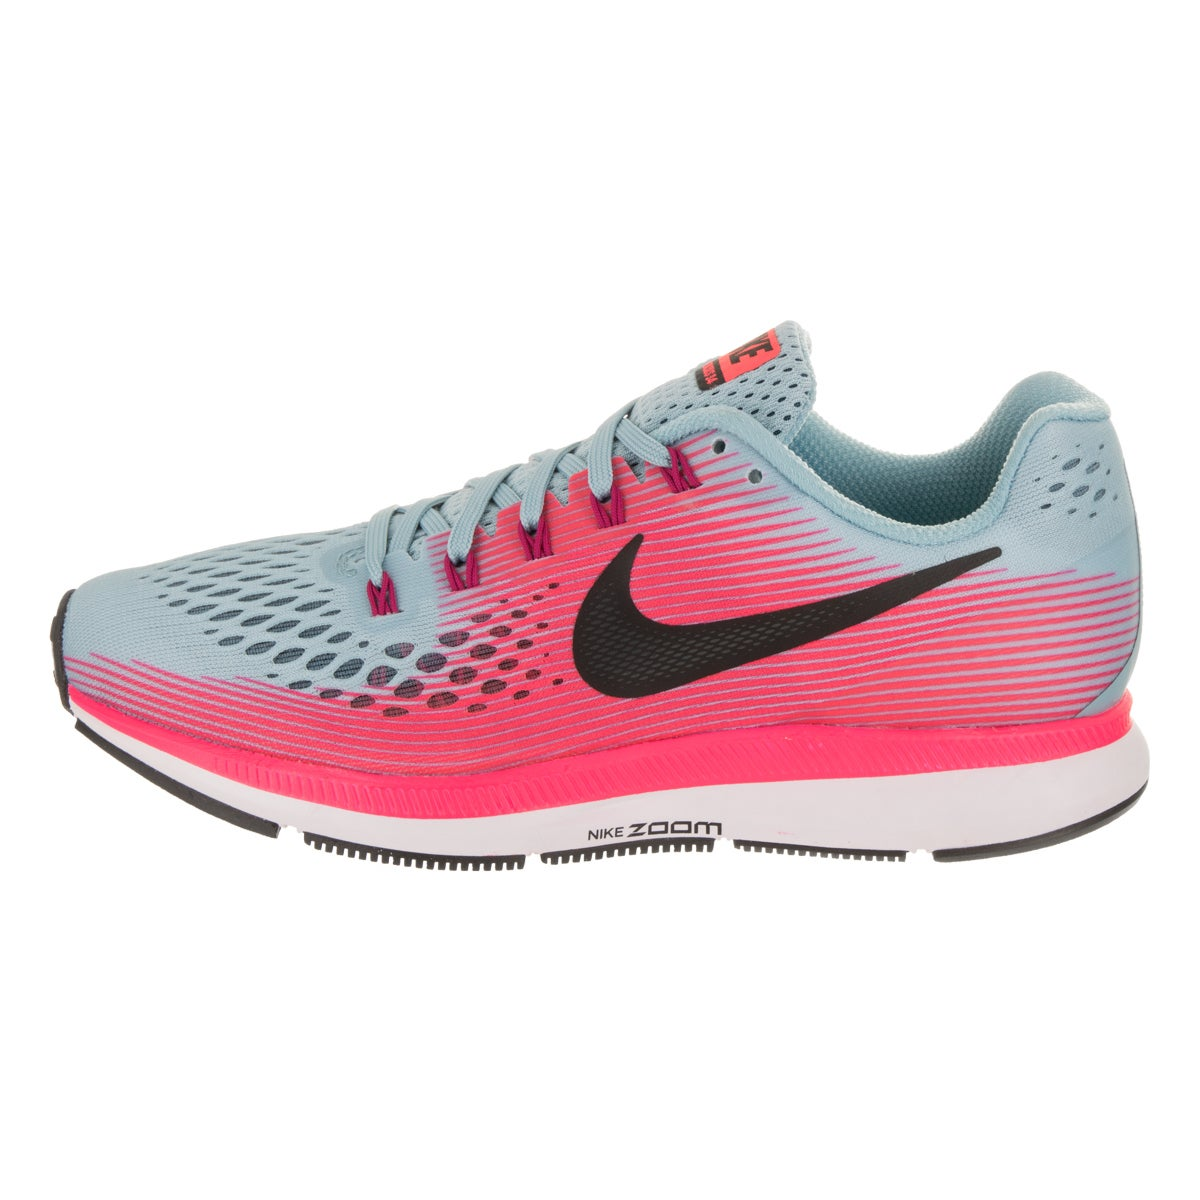 96d2ef6e560 Shop Nike Women s Air Zoom Pegasus 34 Wide Running Shoes - Free Shipping  Today - Overstock - 16839208